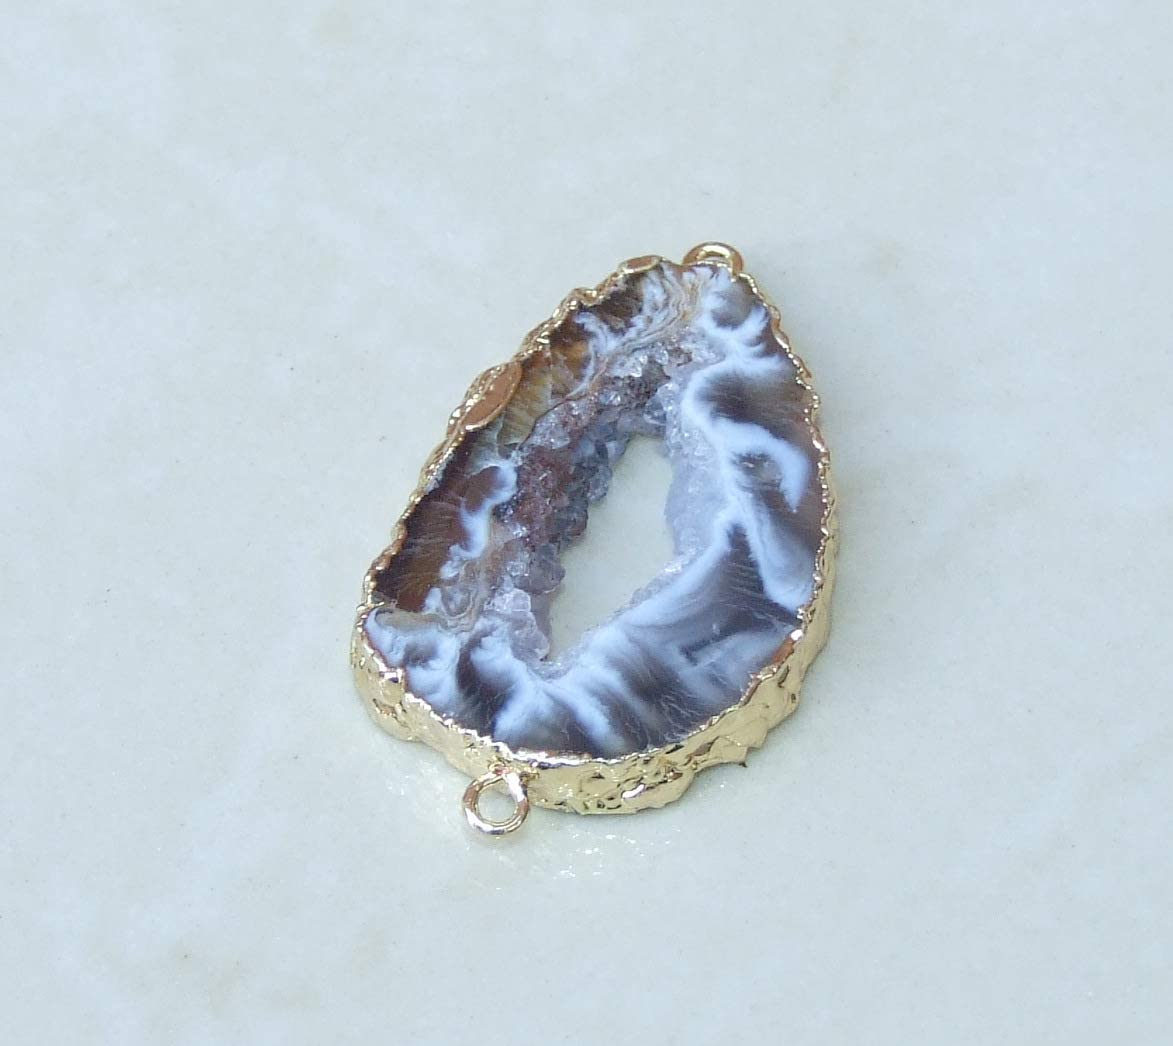 Geode Druzy Connector Single Bail Connectors Pendant Connector 10pc Silver Plated Geode Druzy Natural Geode Druzy Yellow Geode Druzy